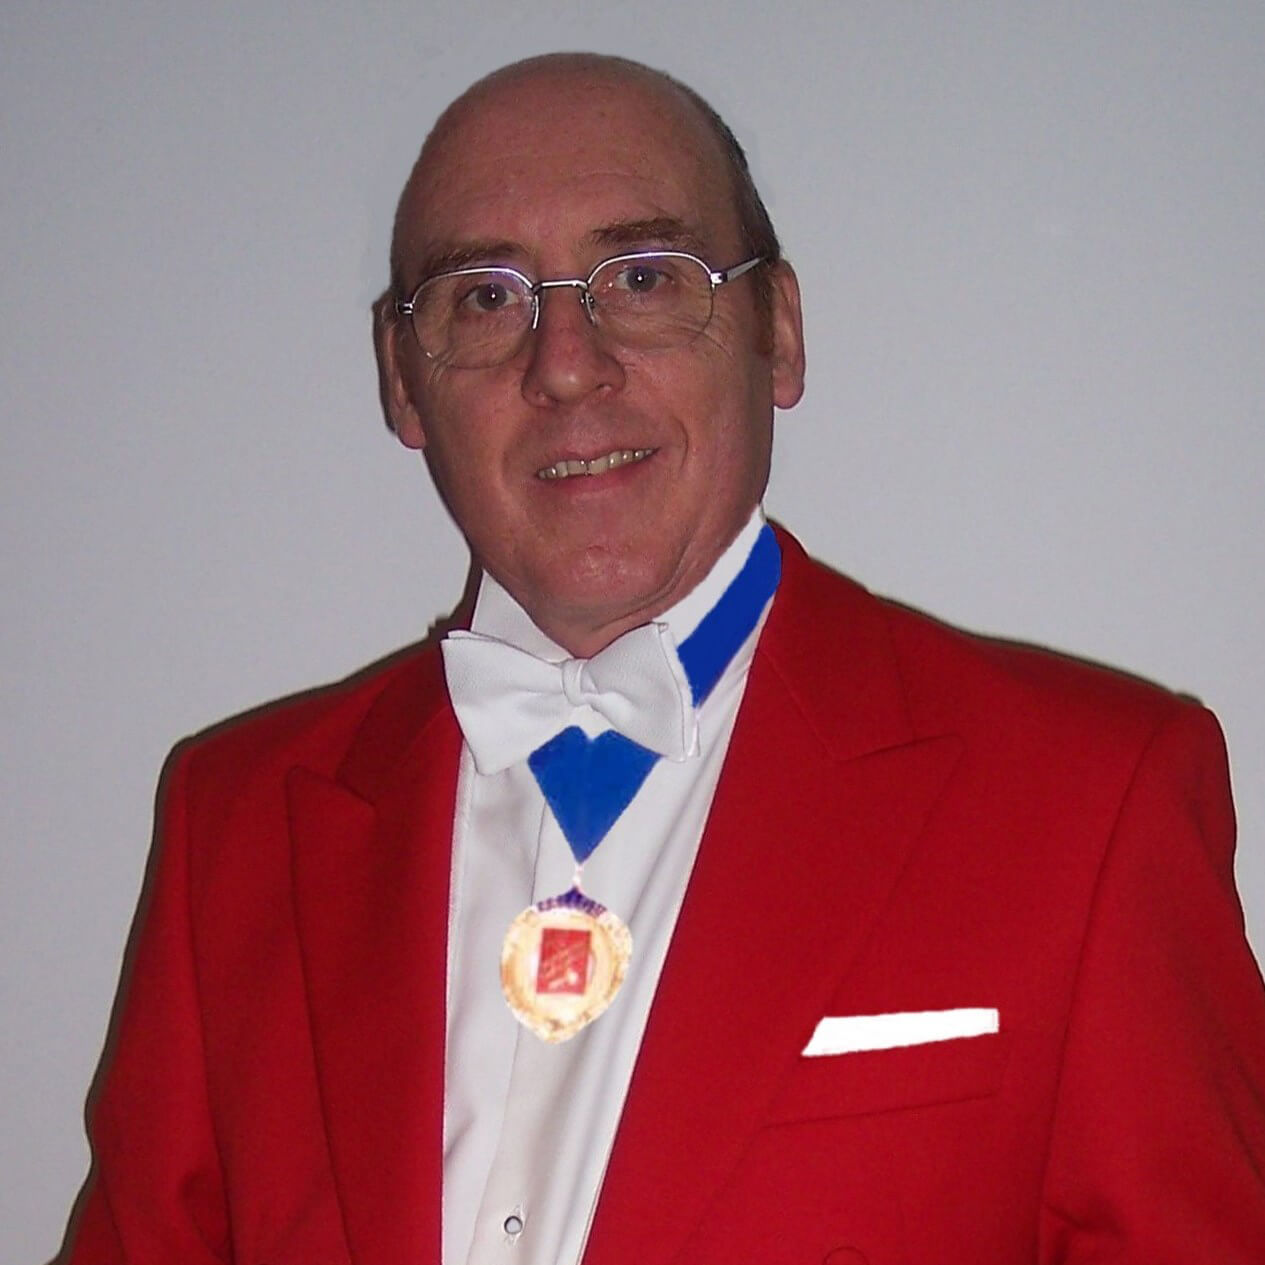 Professional Toastmaster and Master of Ceremonies Hertfordshire - Keith Reading